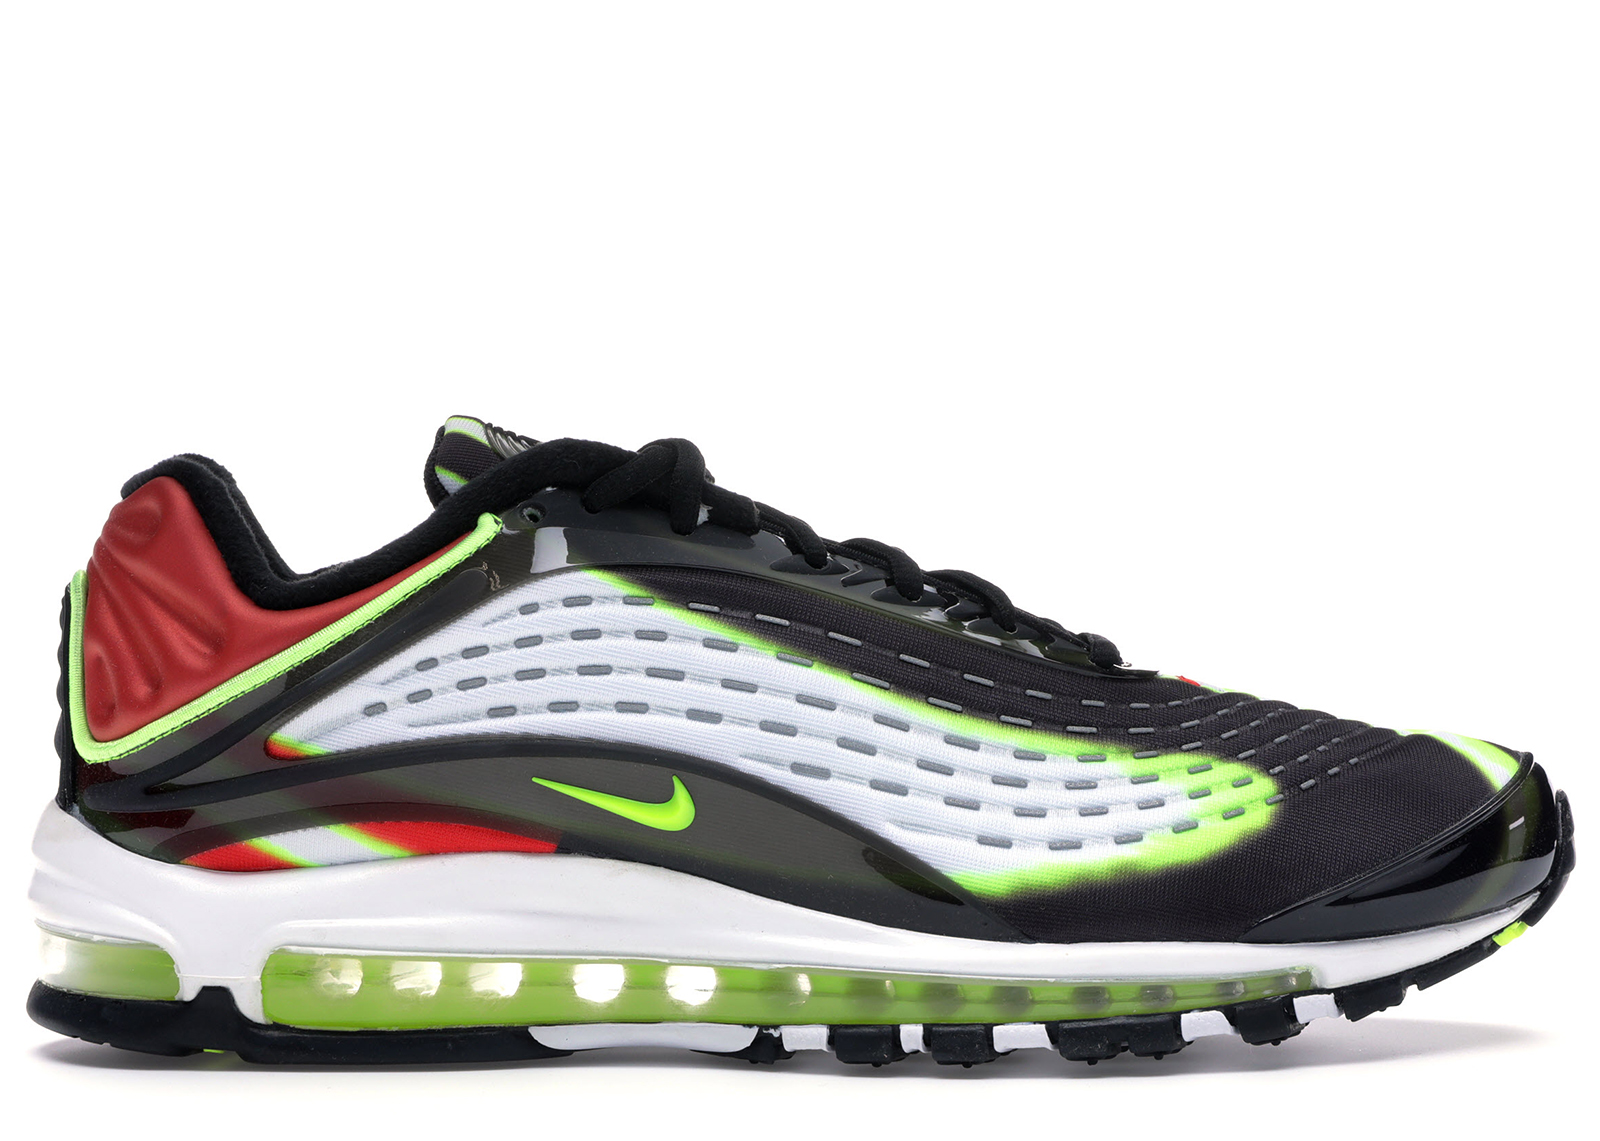 Nike Air Max Deluxe Black Volt Habanero